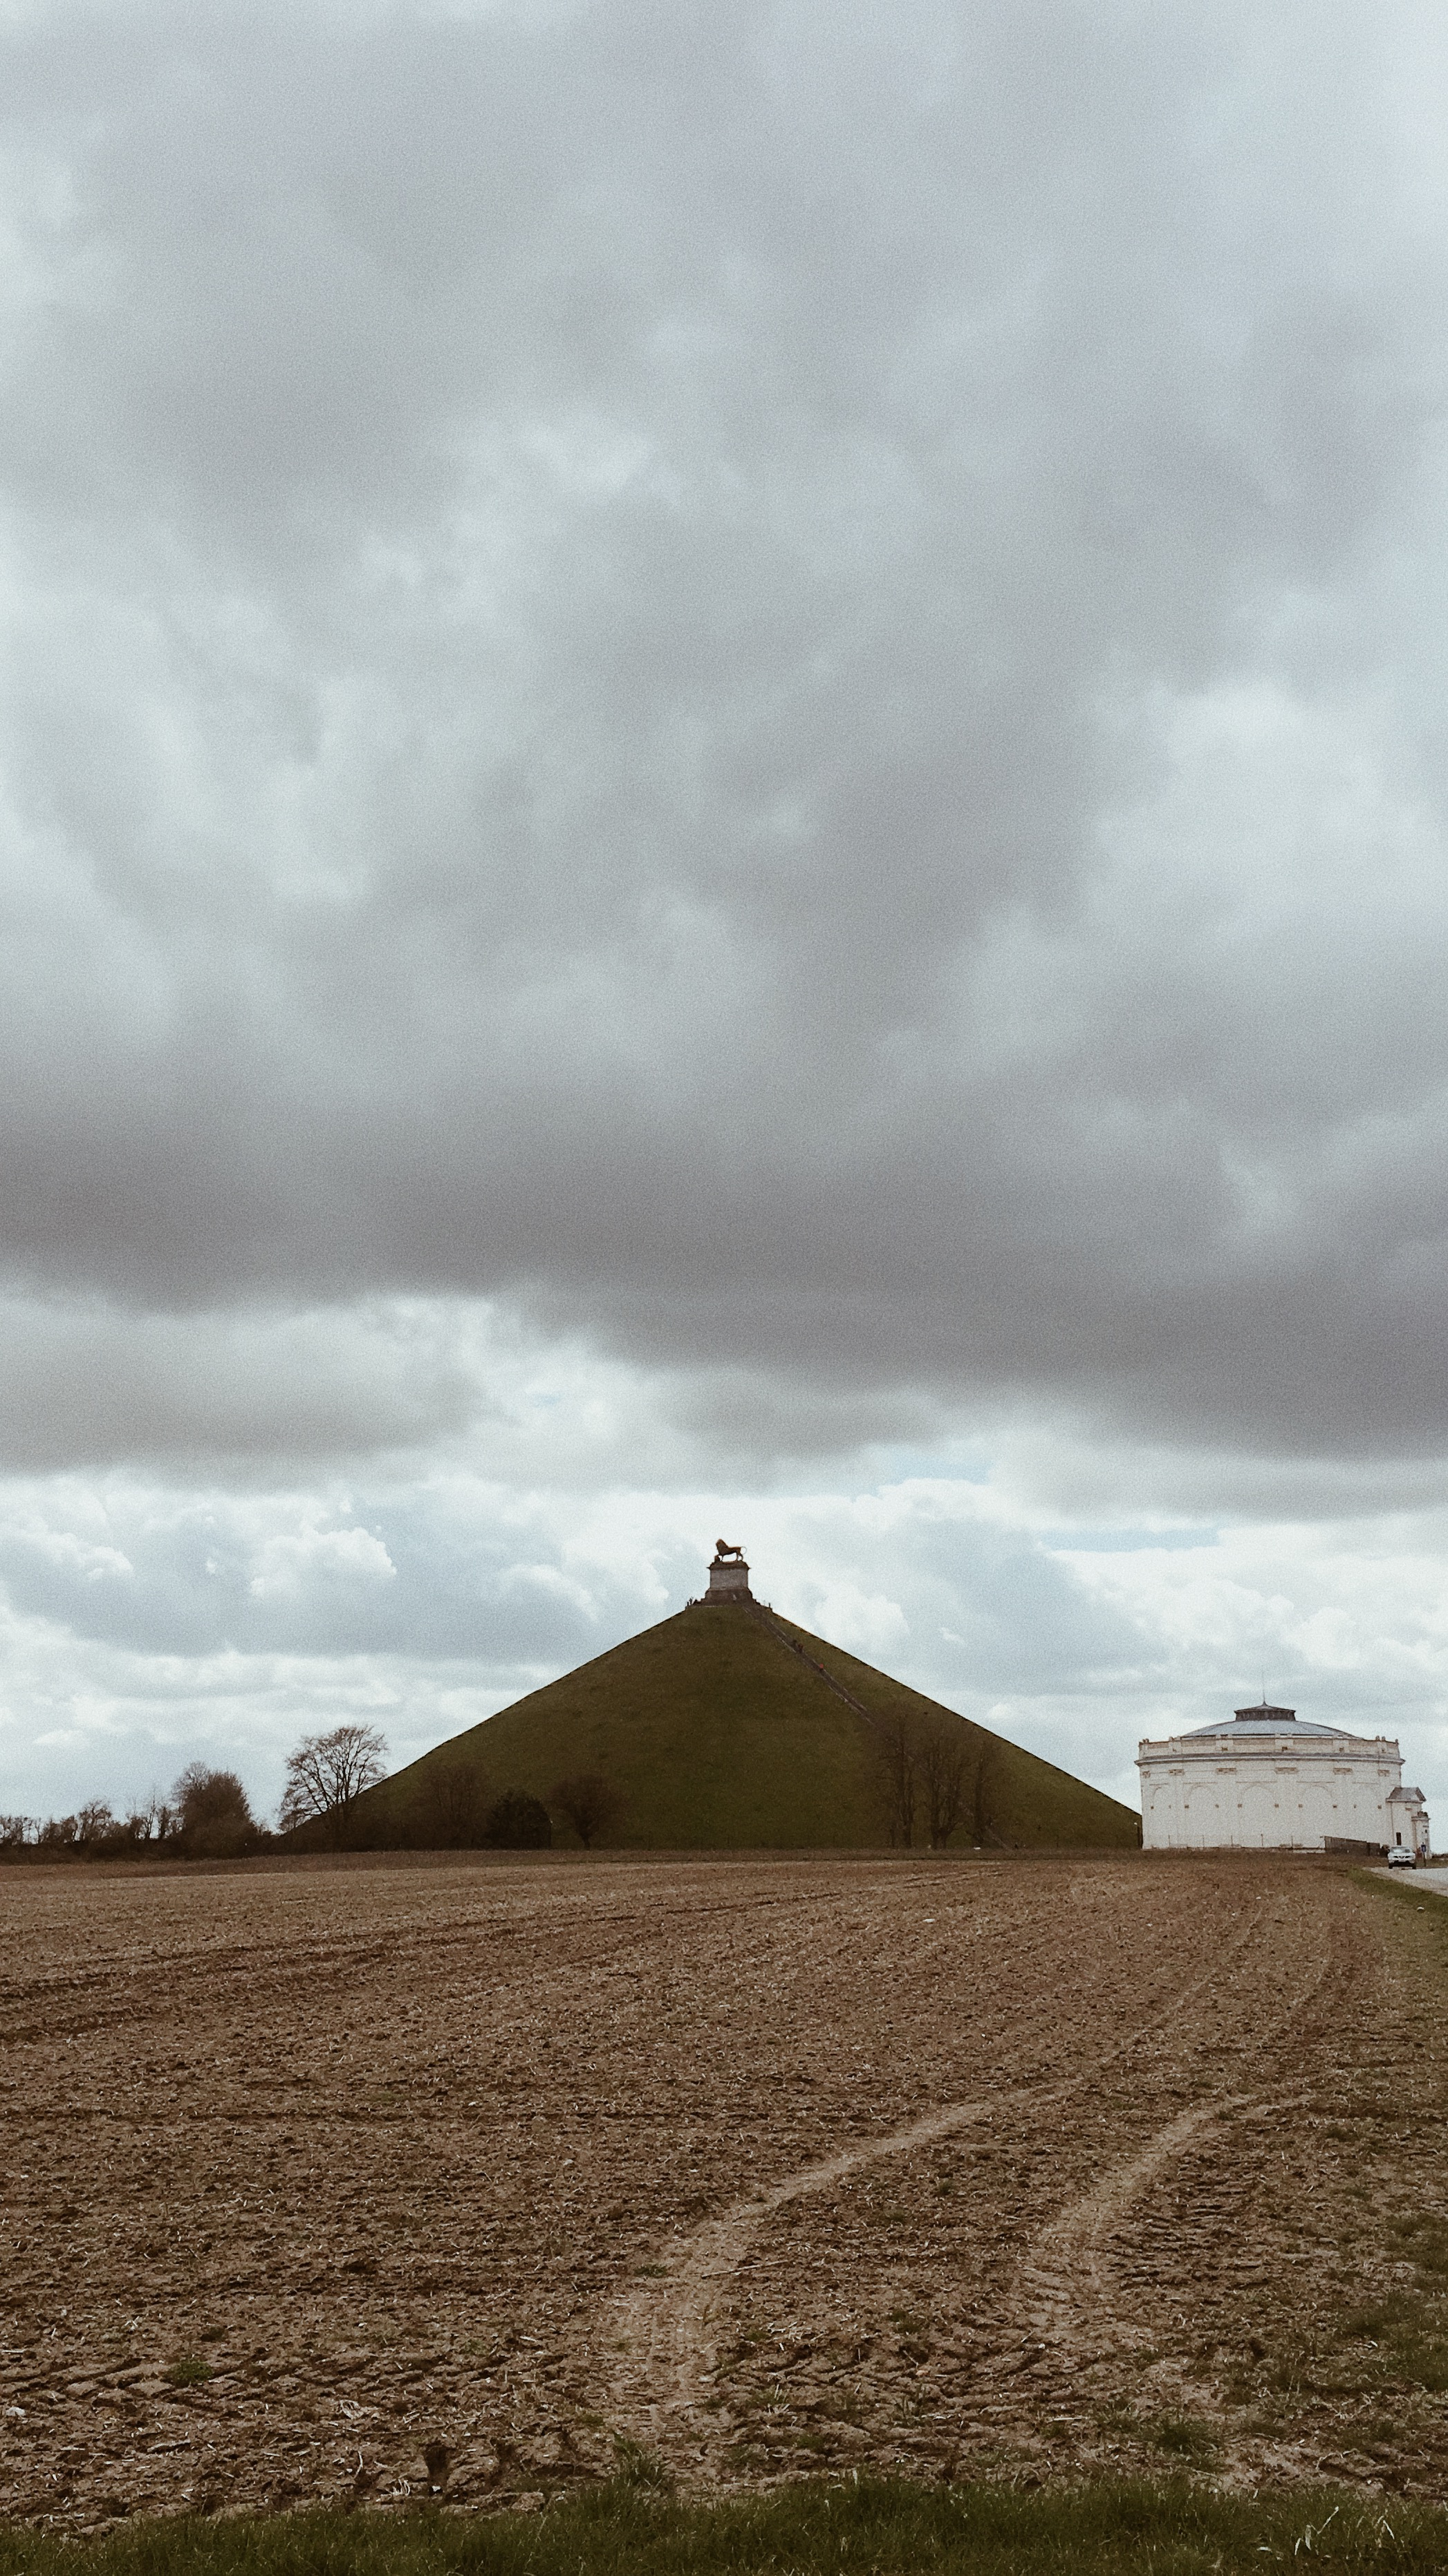 Battlefield of Waterloo and Lion's Mound, Belgium